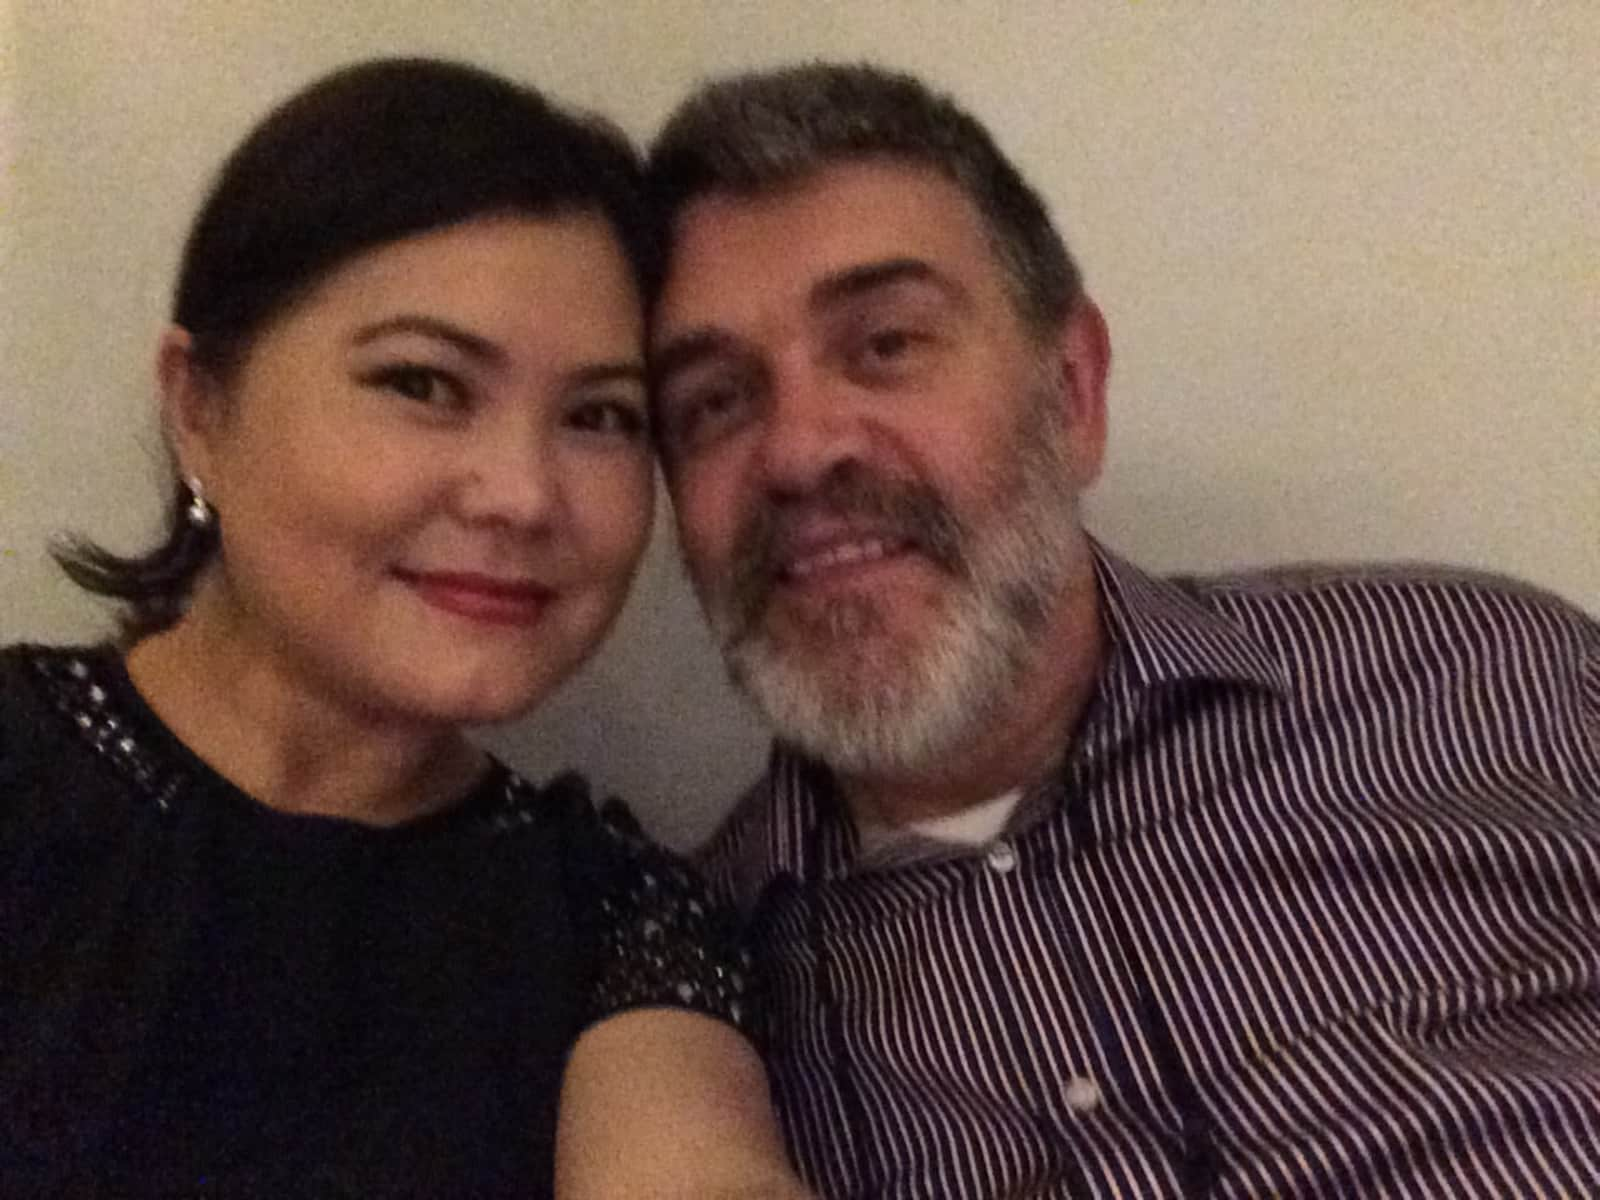 Zhanar & Martin from London, United Kingdom